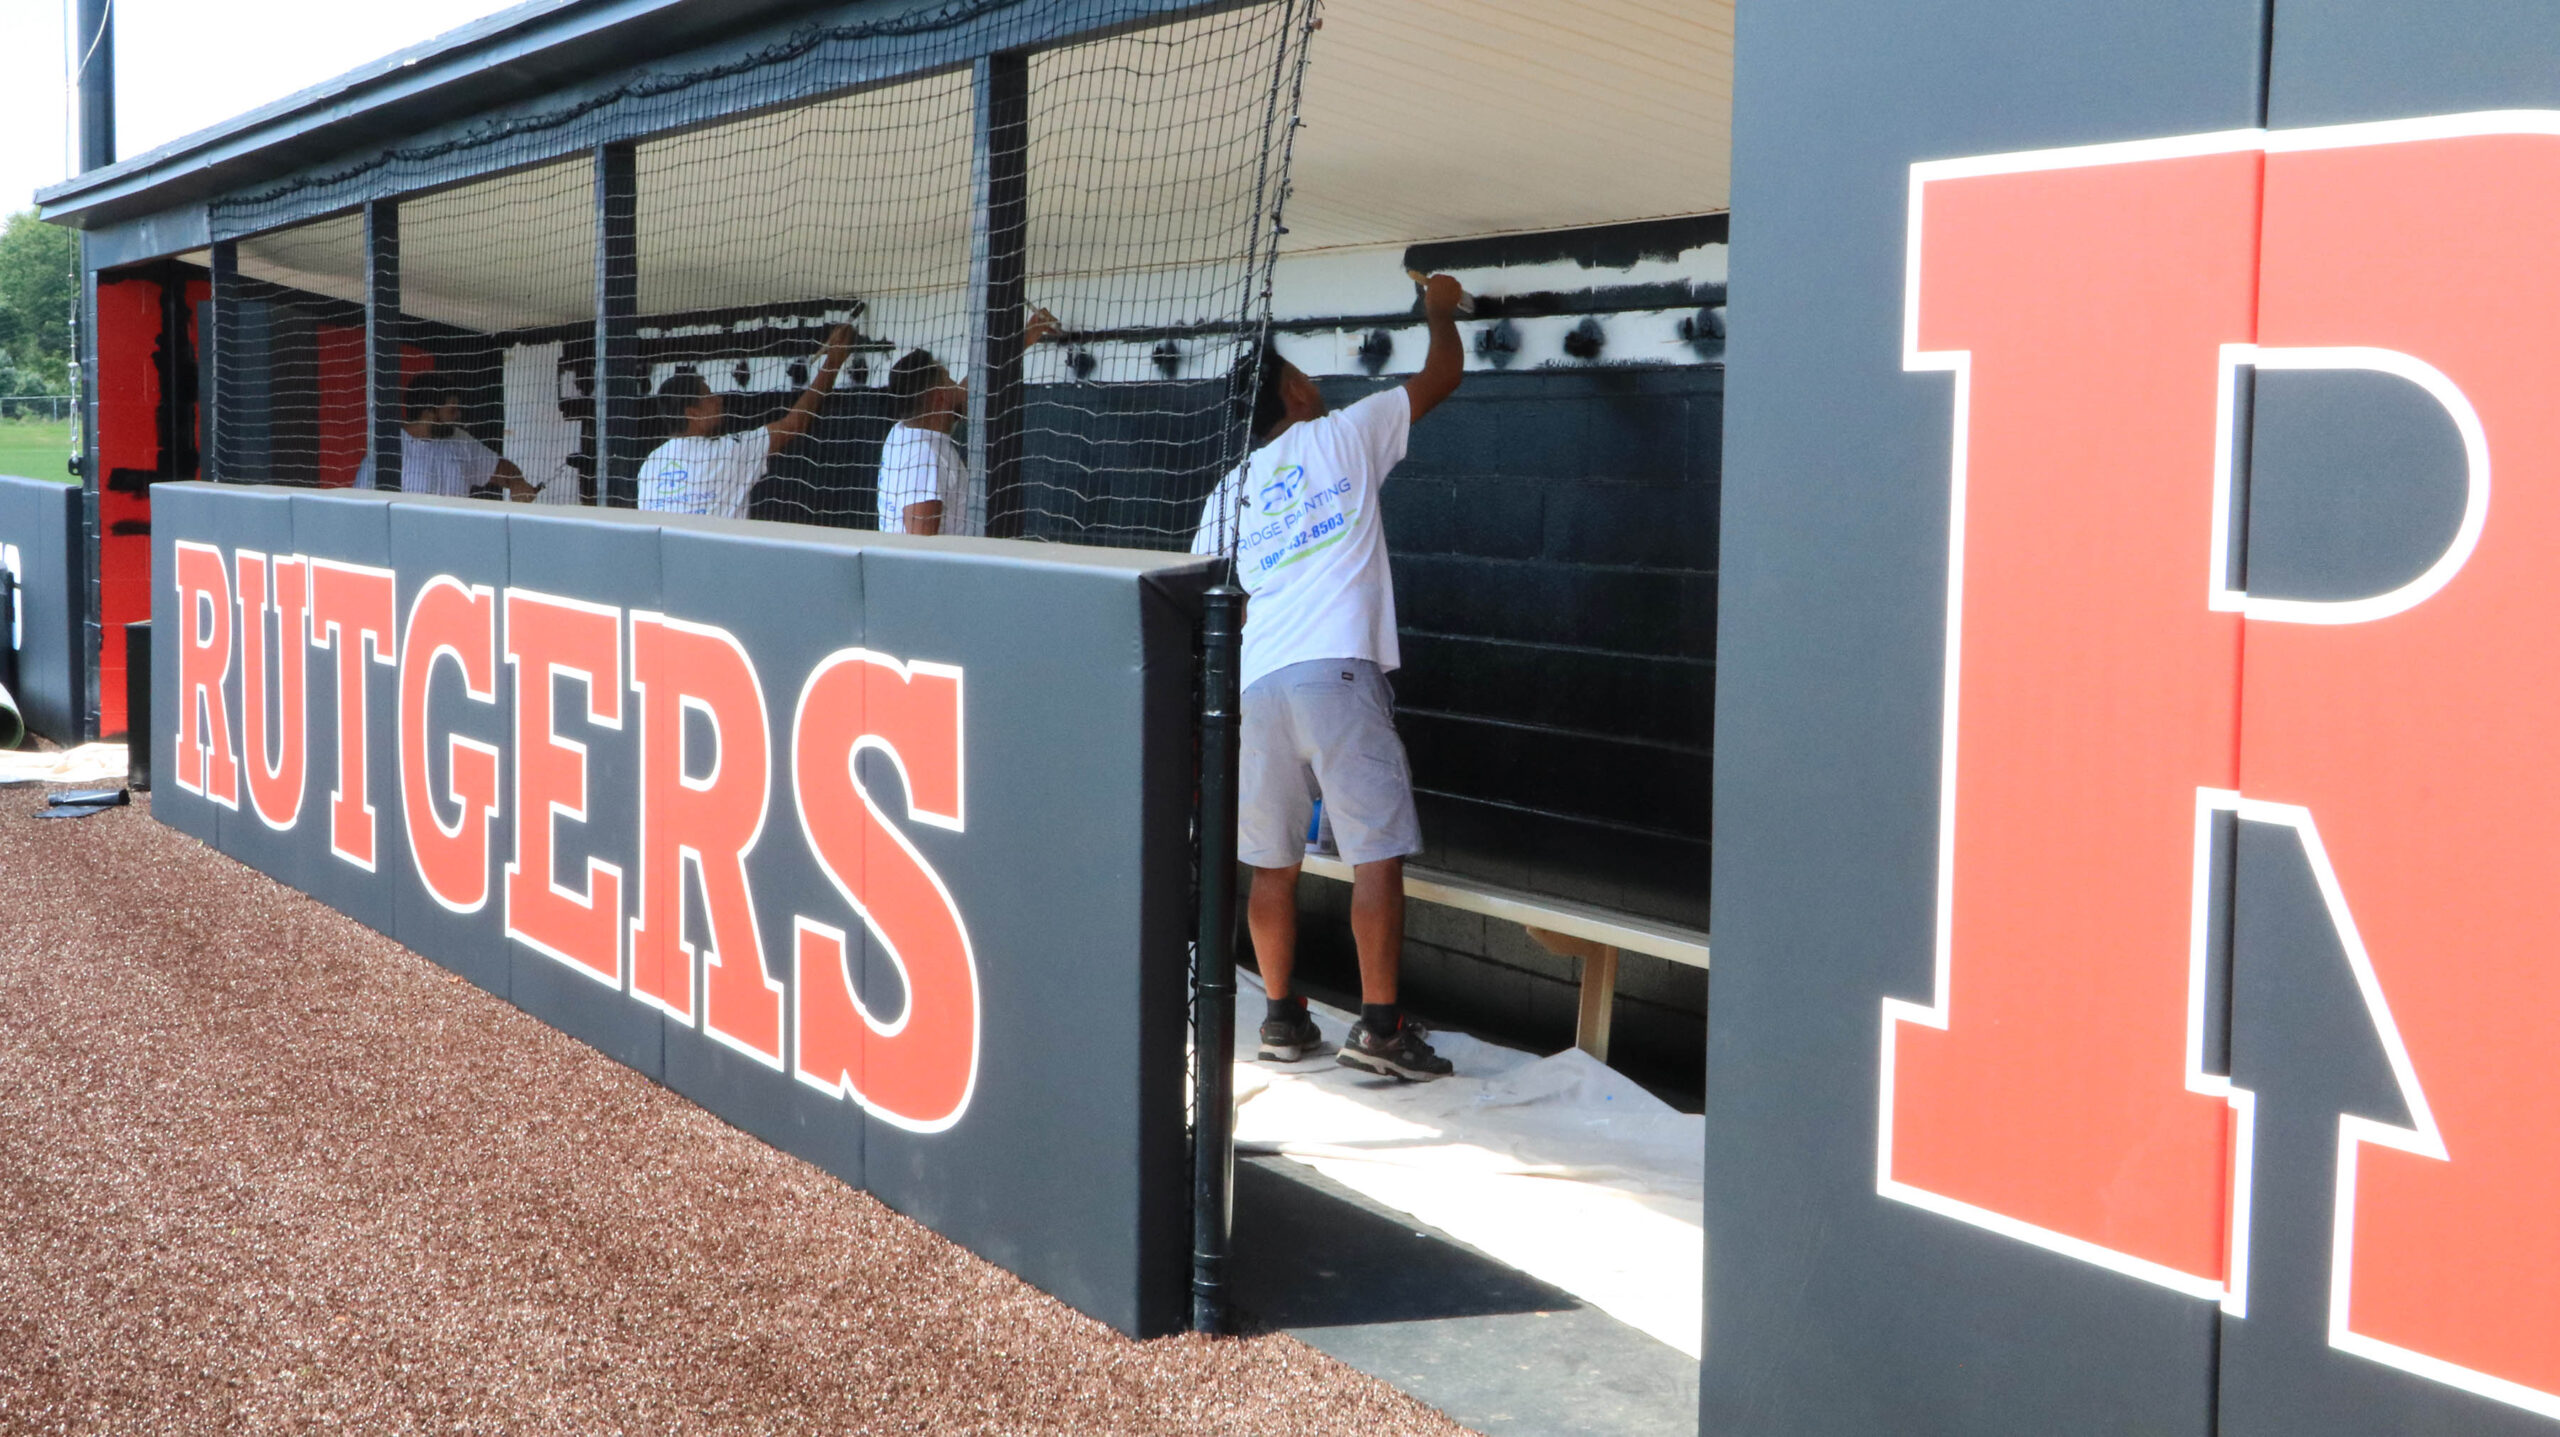 Rutgers-Dugout-Banner-Image-1-scaled